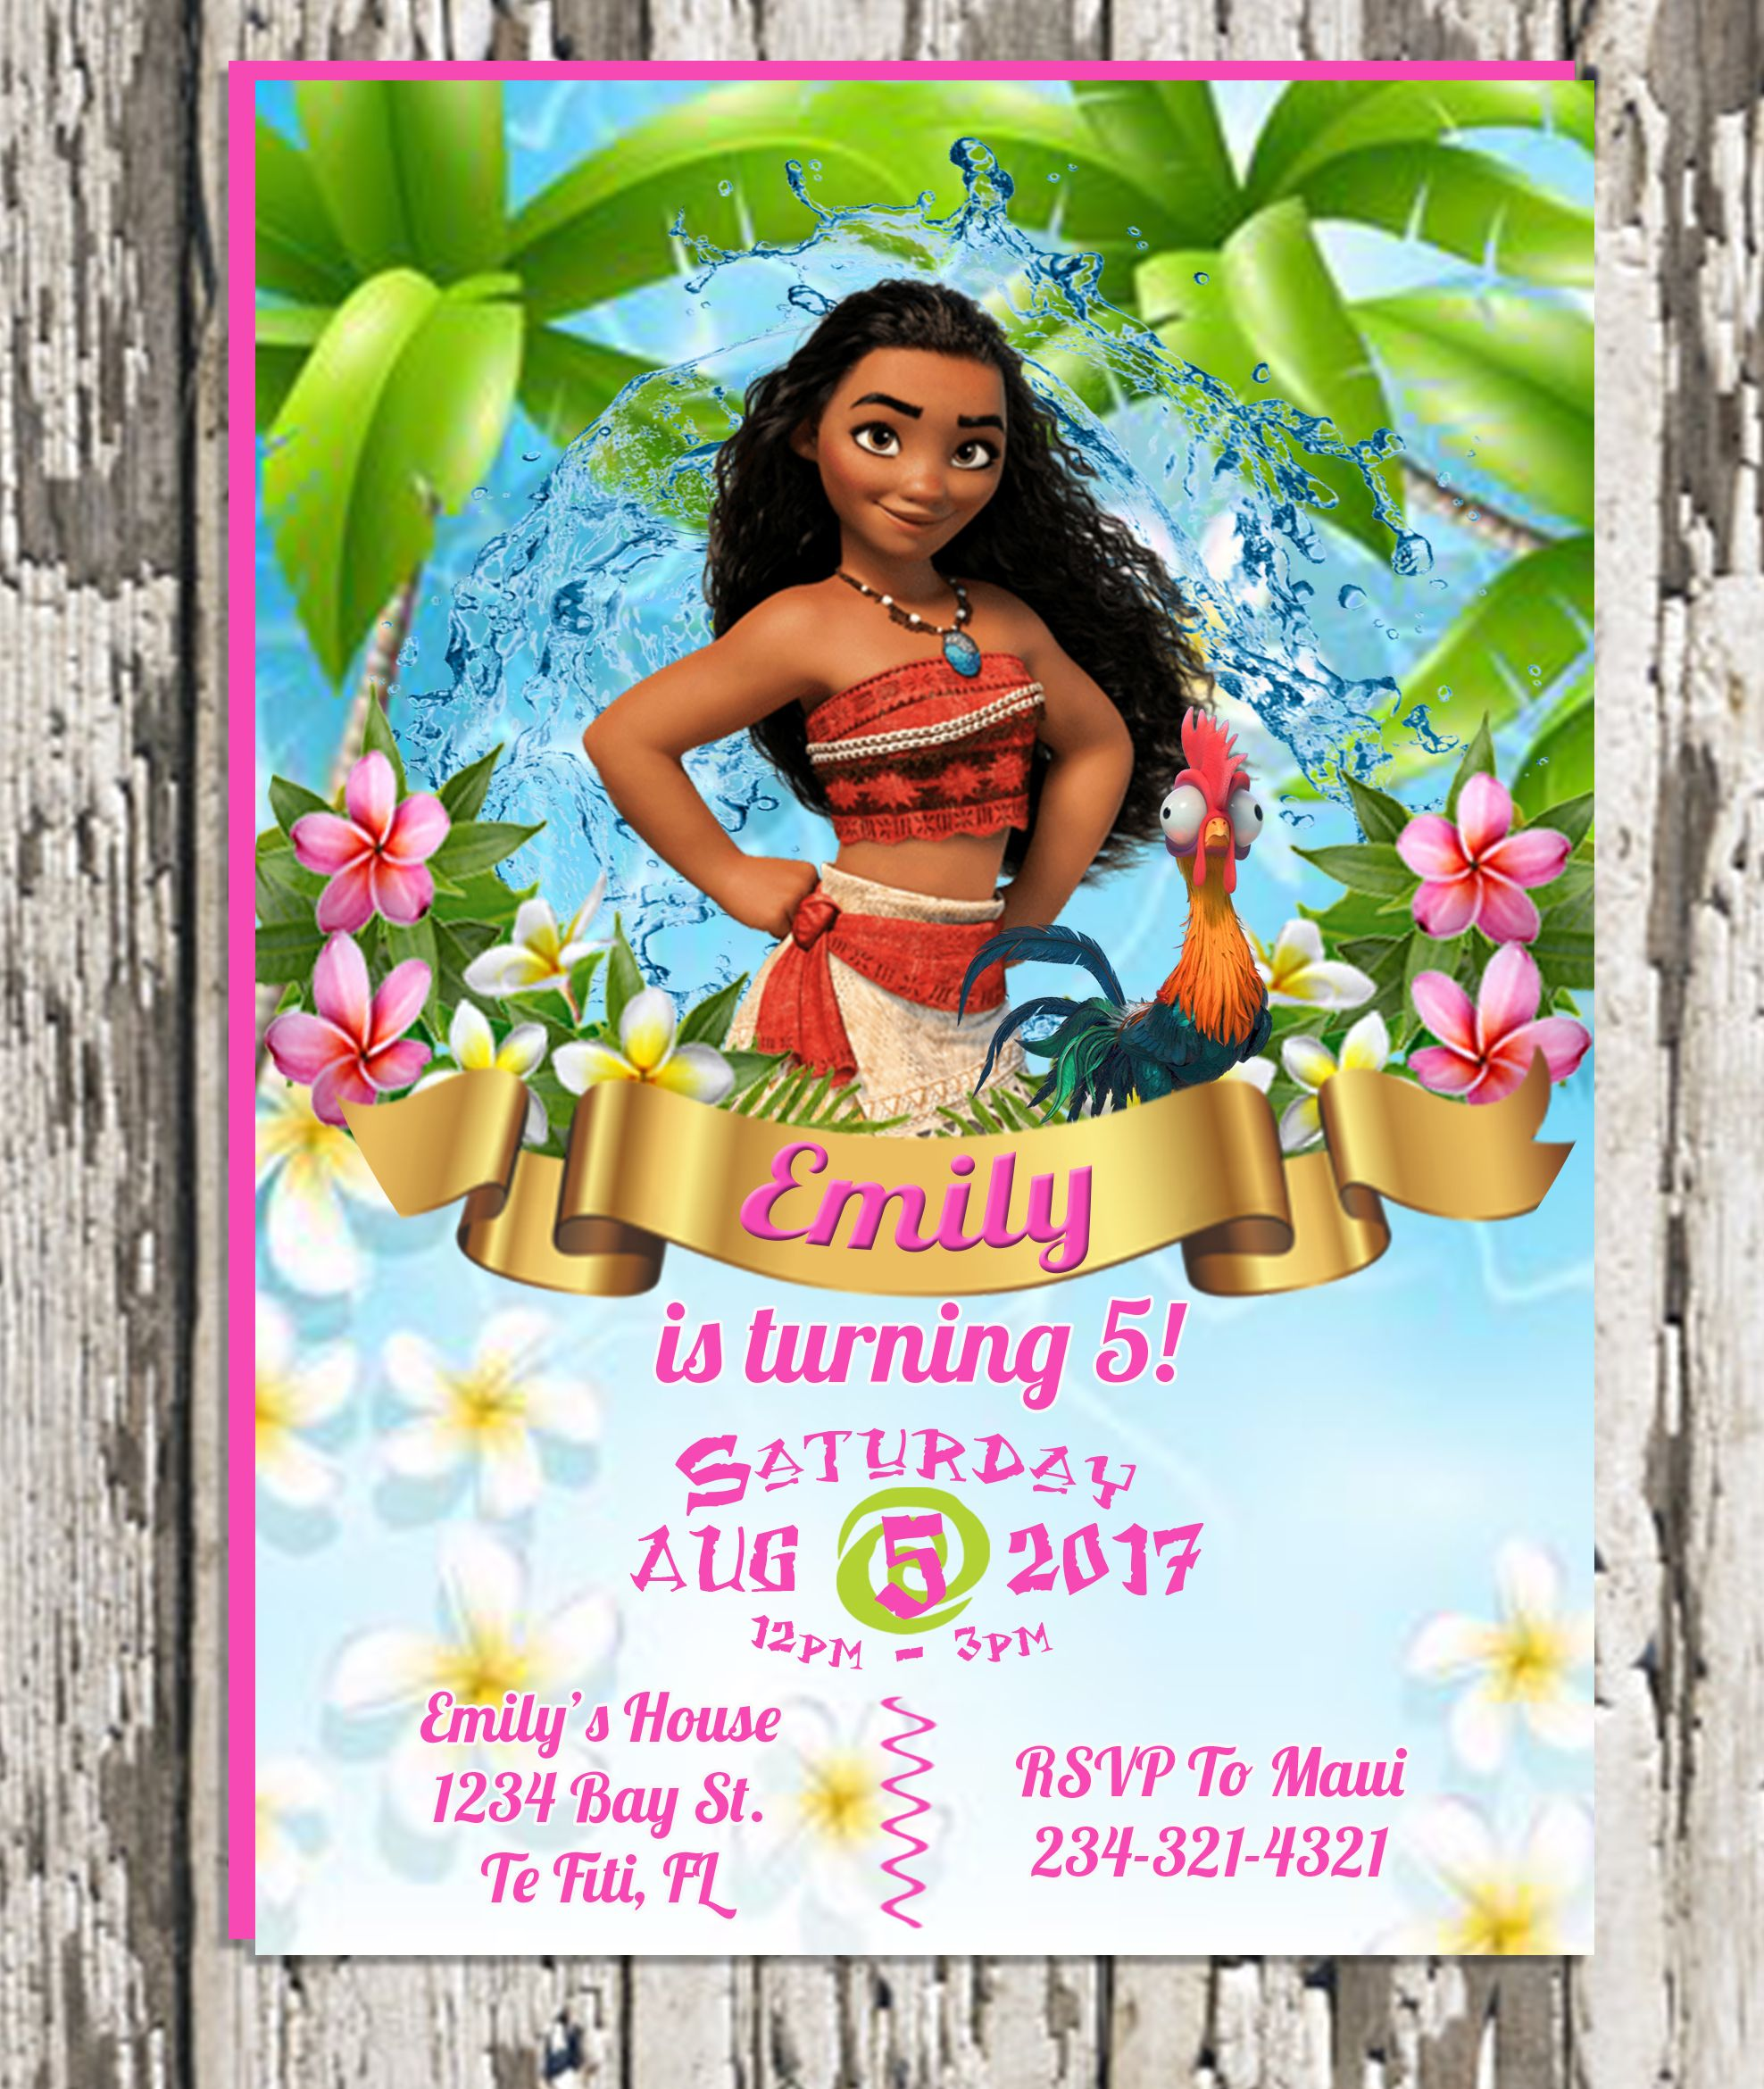 Moana And Hei Birthday Invitation Digital Download Or Printed Order Prints Online